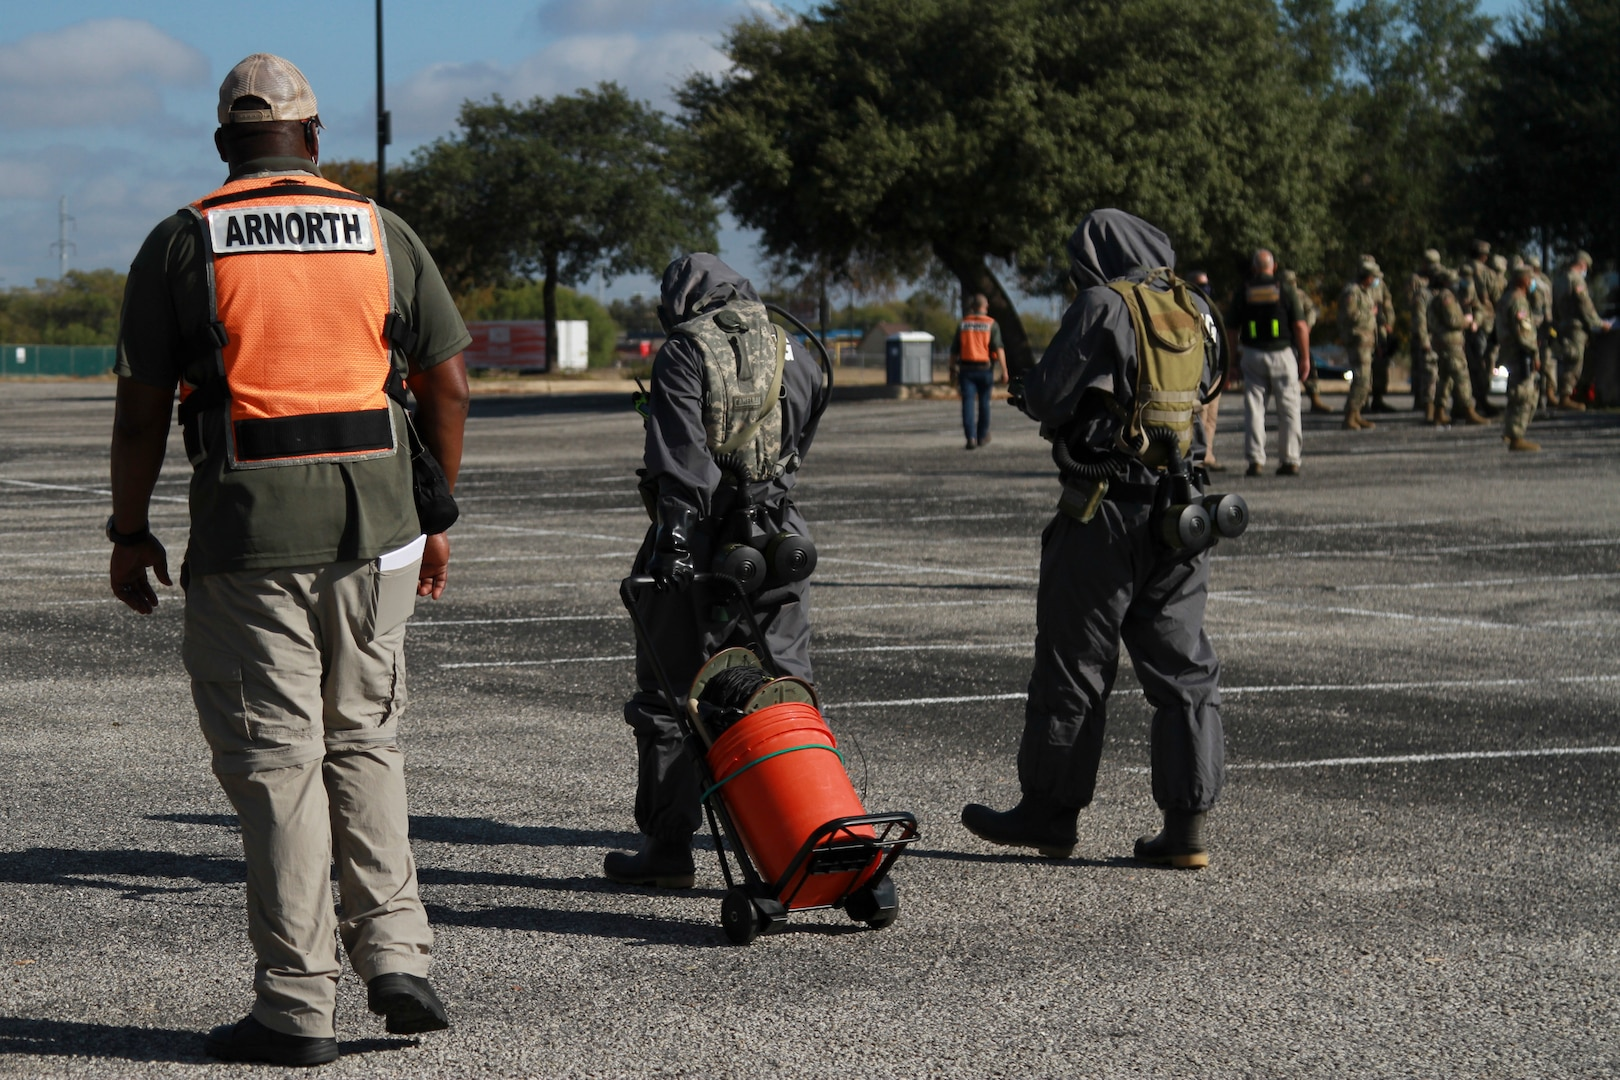 Gerald Evans (left), an observer controller contractor for U.S. Army North Civil Support Training Activity, evaluates Pfc. Wenhui Huang (center), a chemical, biological, radiological and nuclear specialist, and Pfc. Jayson Morris-Dunlap (right), a signal support systems specialist, both assigned to the 181st CBRN Company, as they set up force protection measures during a mass casualty decontamination lane at the Nelson W. Wolff Municipal Stadium Nov. 5.